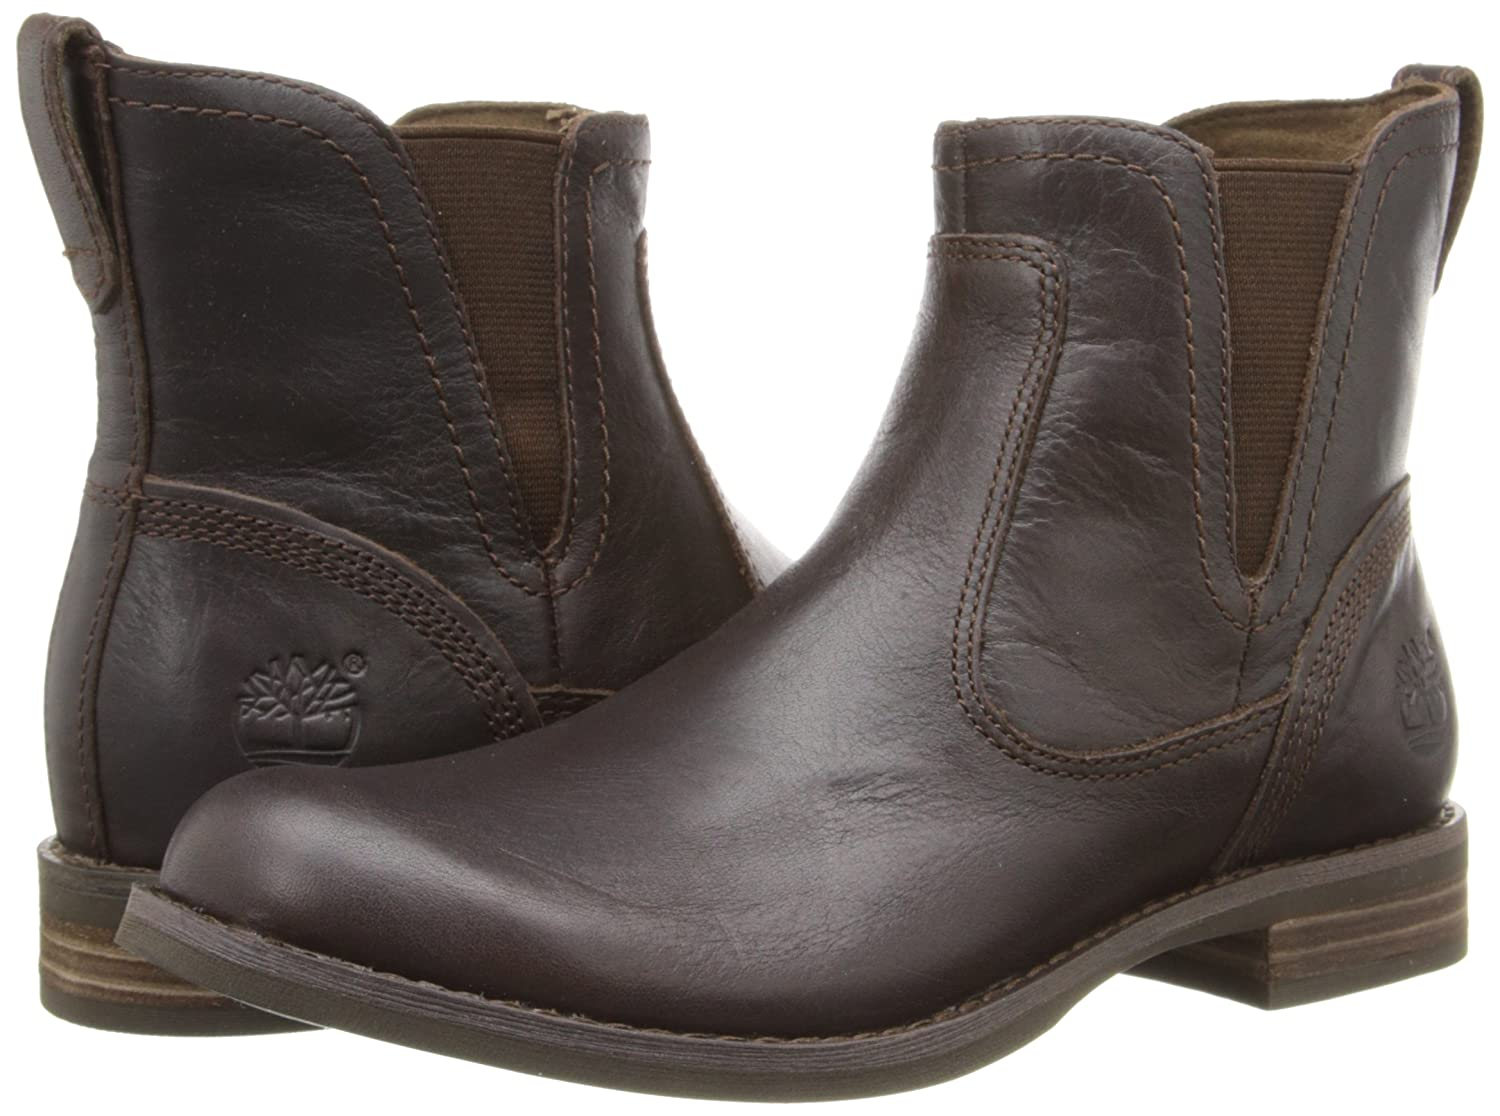 Timberland Earthkeepers Bottes Chelsea - Femmes qskFpZc